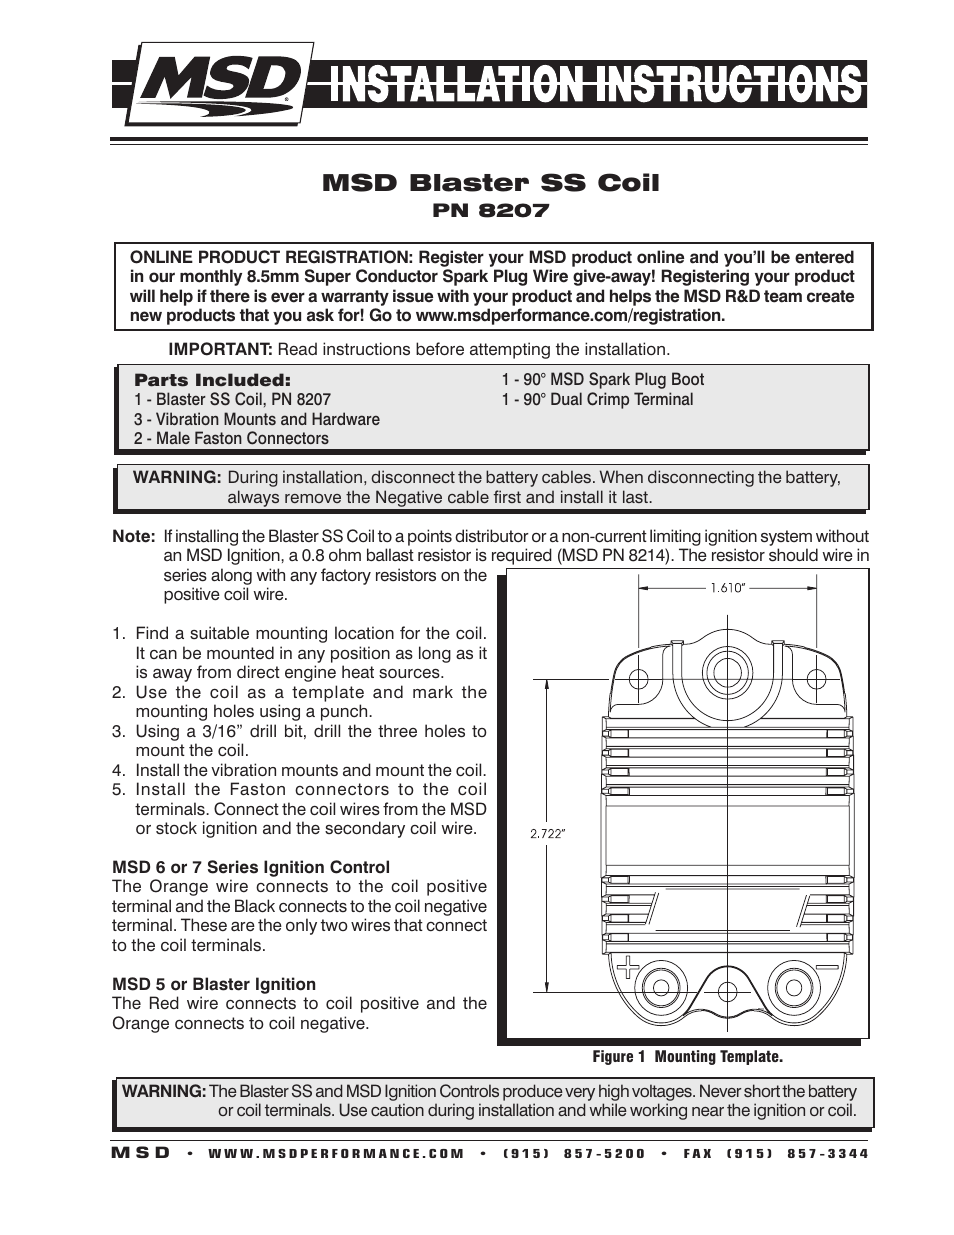 msd coil wiring diagram msd image wiring diagram msd blaster ss coil wiring diagram wiring diagram and hernes on msd coil wiring diagram